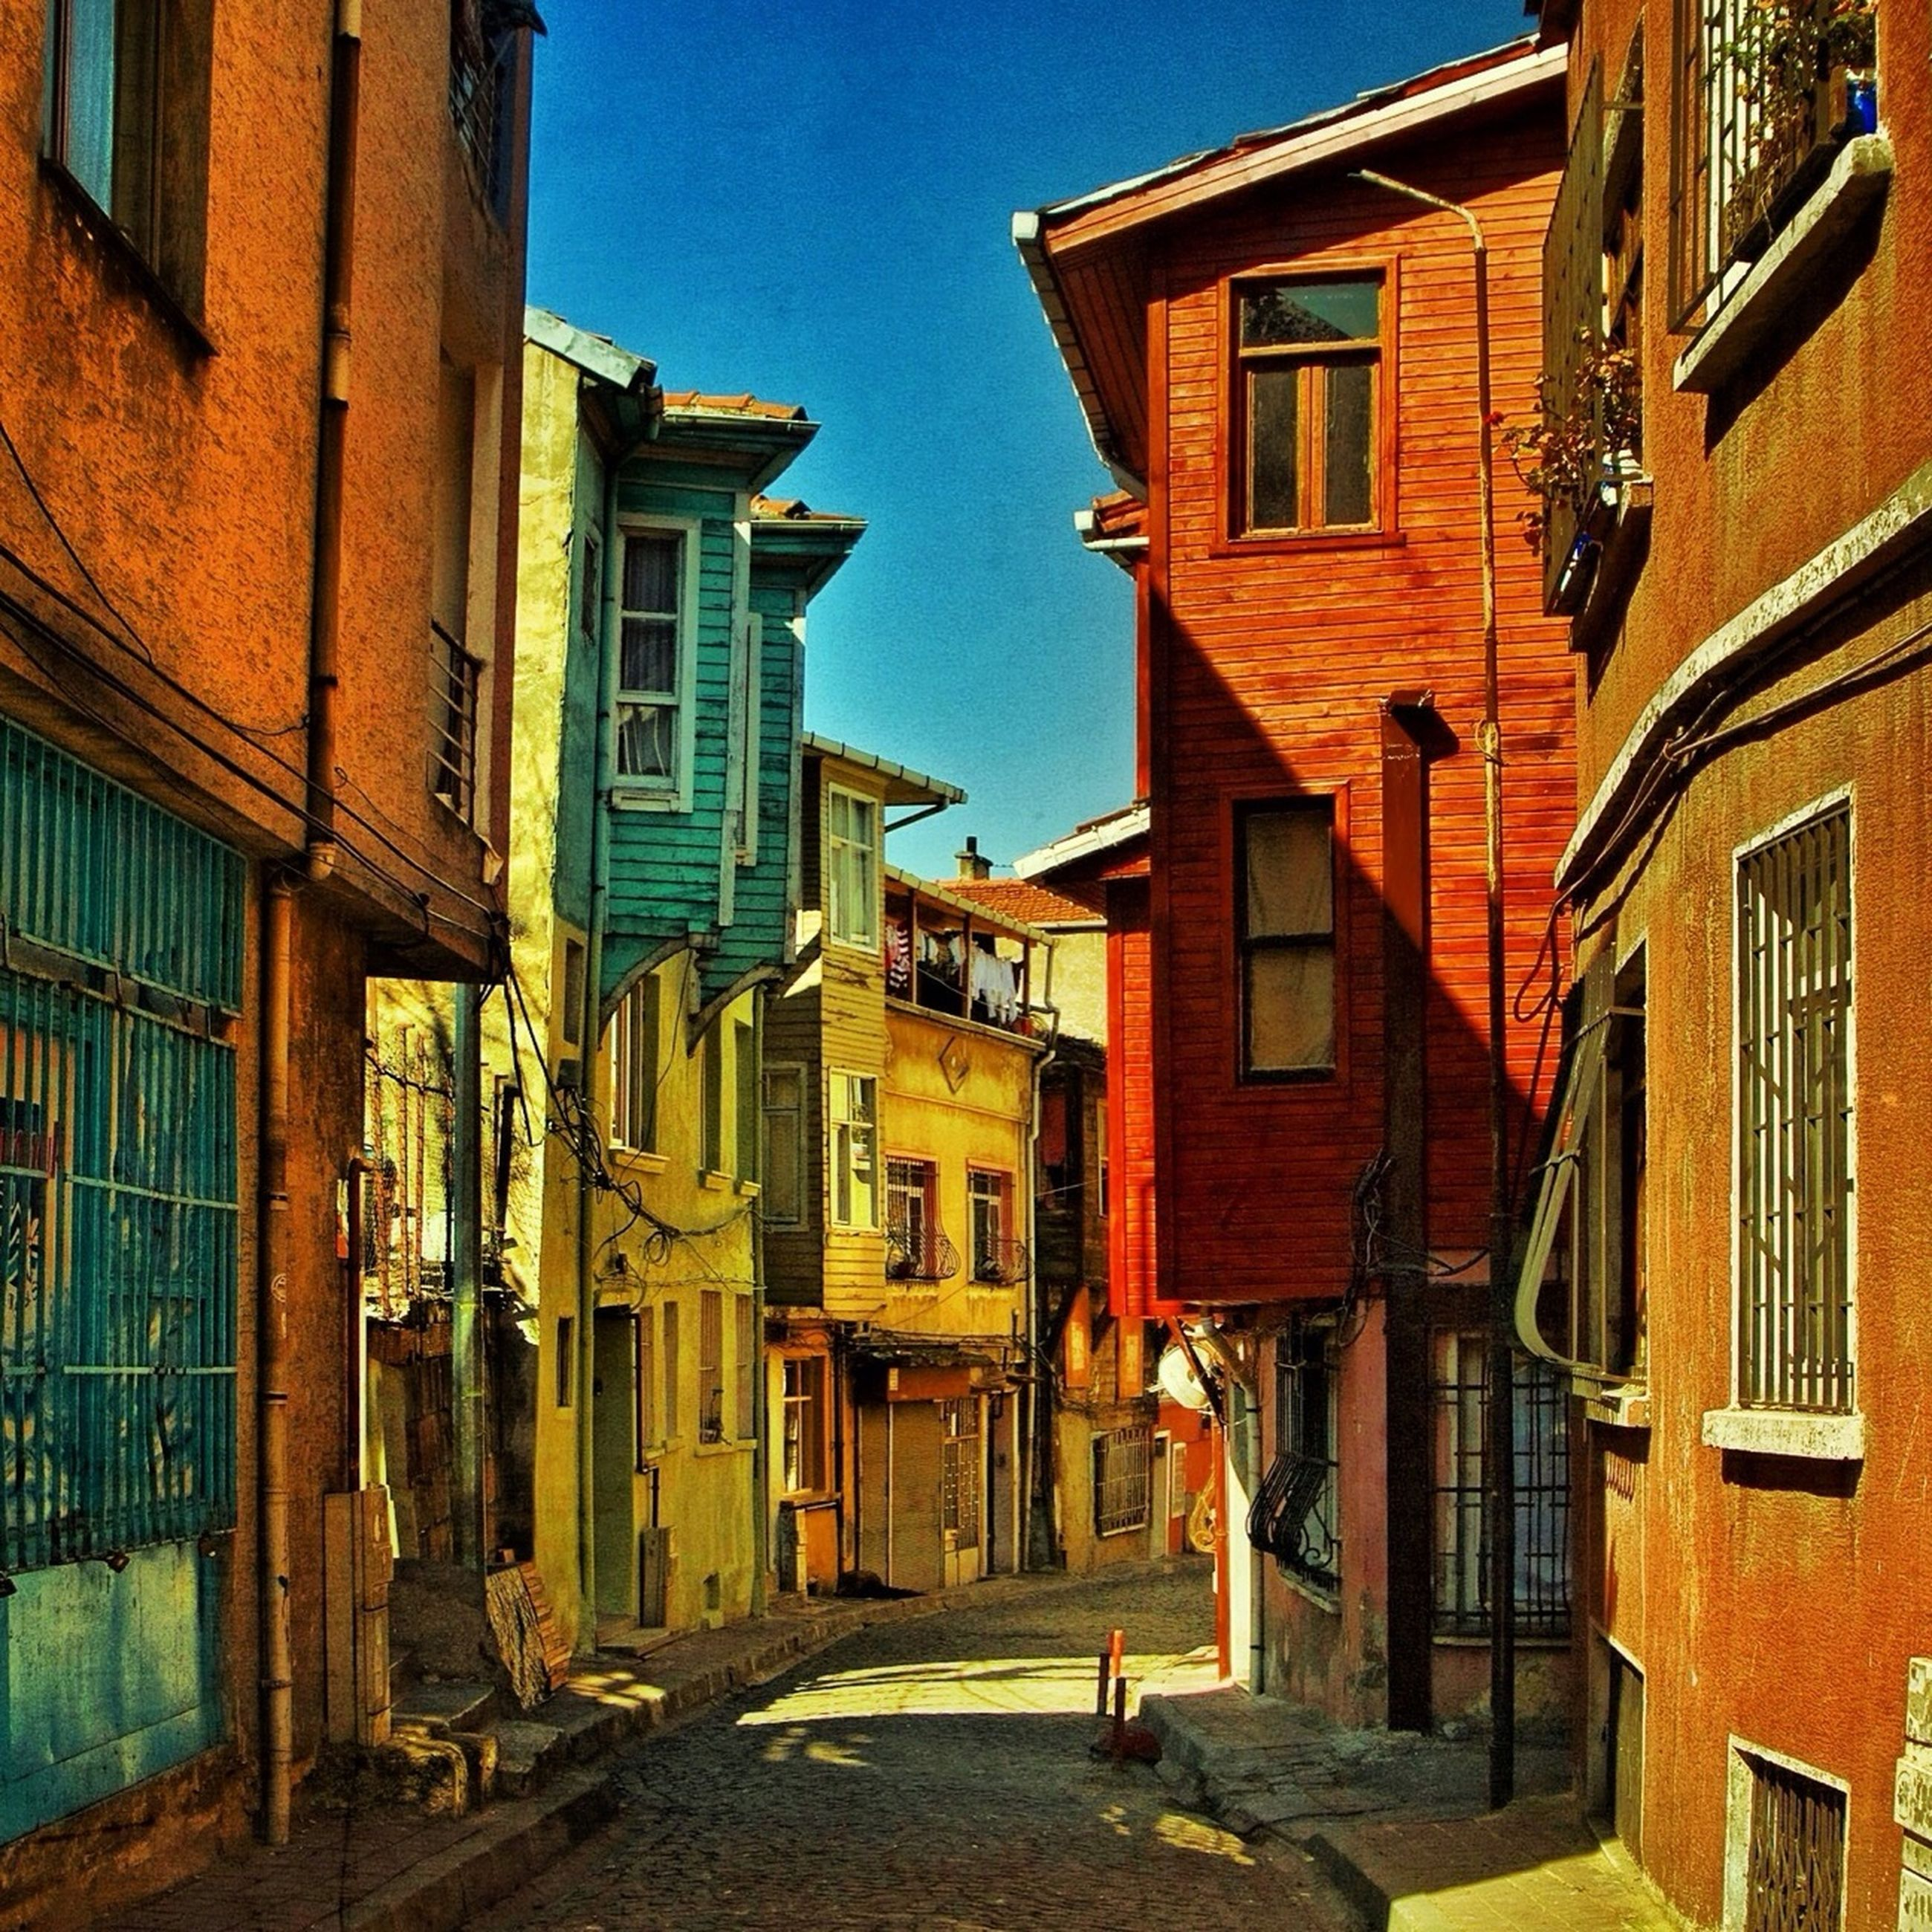 building exterior, architecture, built structure, residential building, residential structure, city, building, window, house, street, sunlight, shadow, blue, residential district, city life, clear sky, outdoors, day, alley